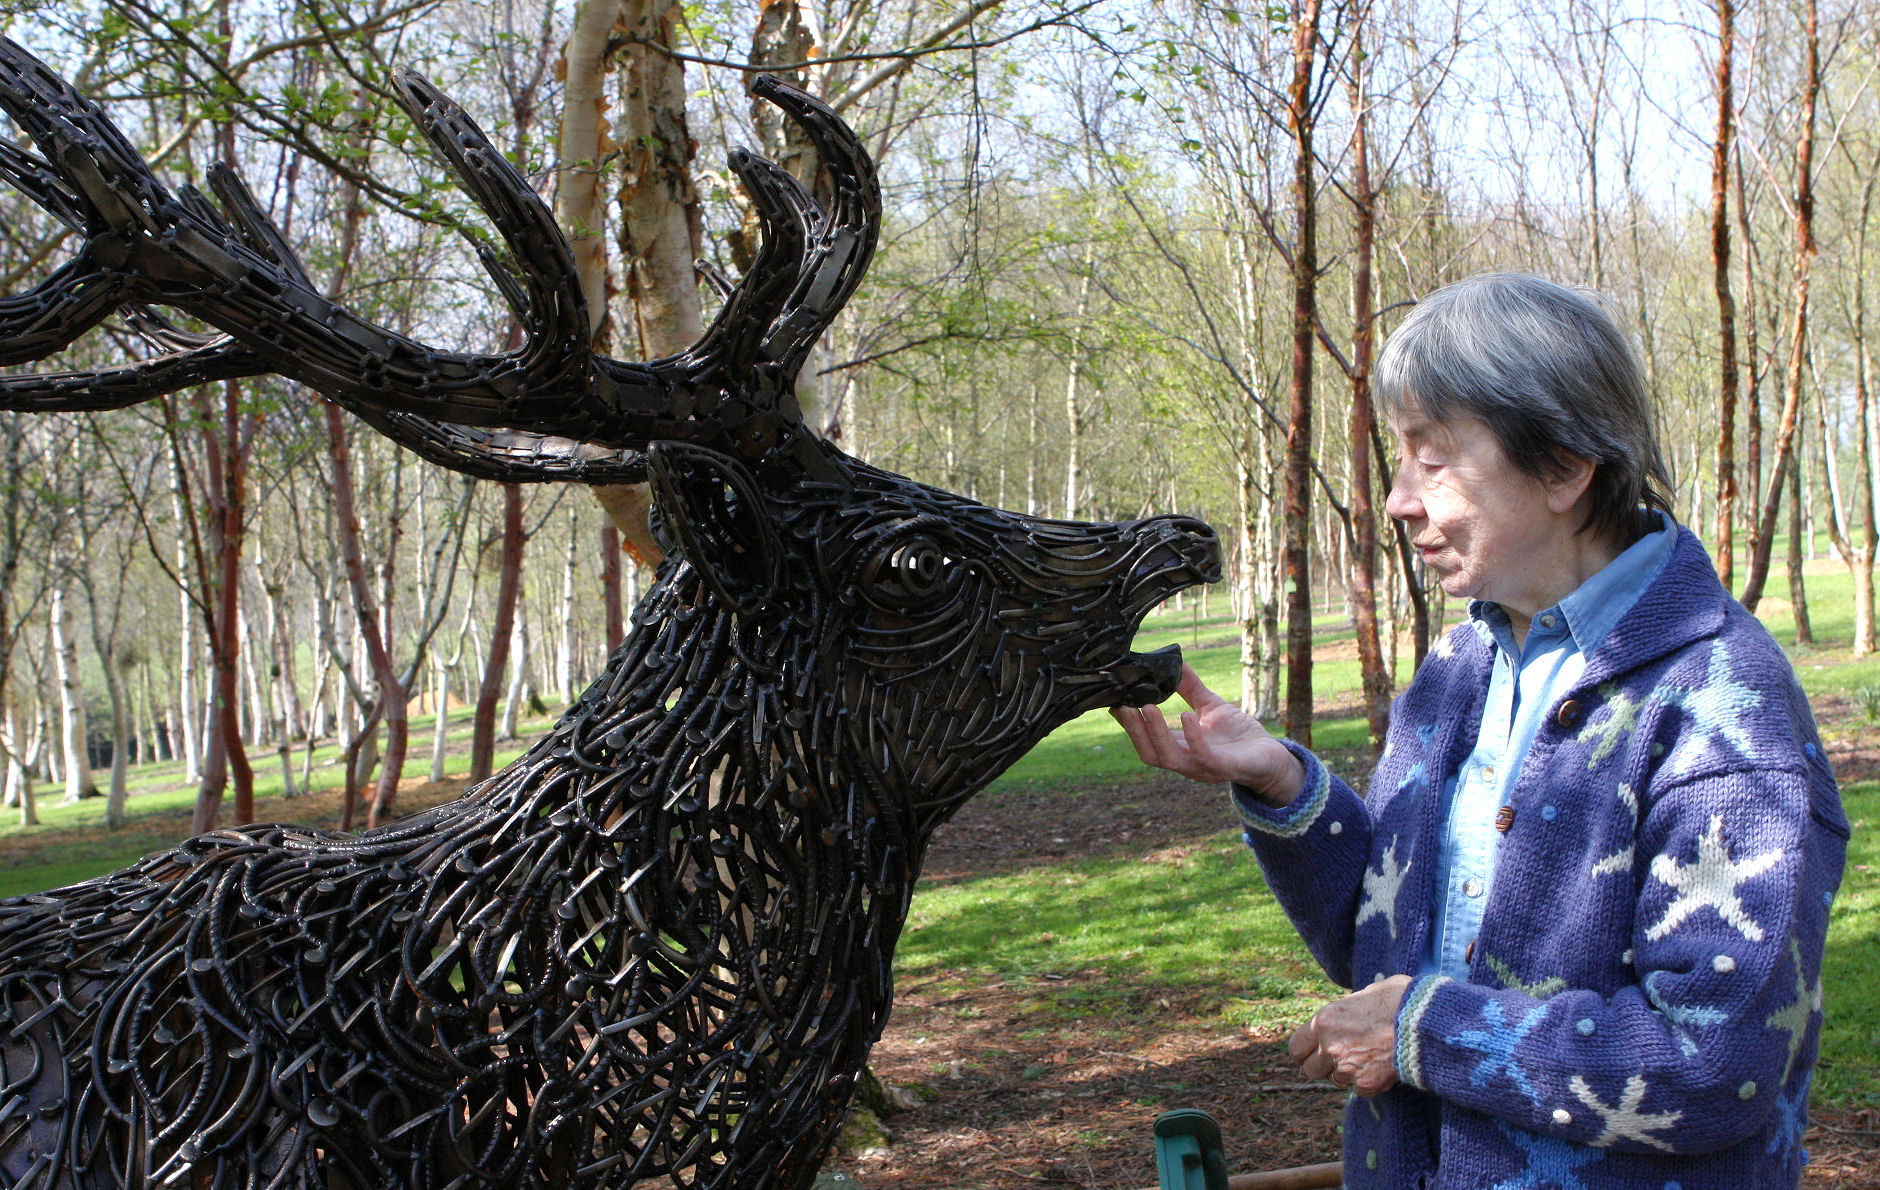 June with one of the sculptures at the Mythic Garden, near Chagford.